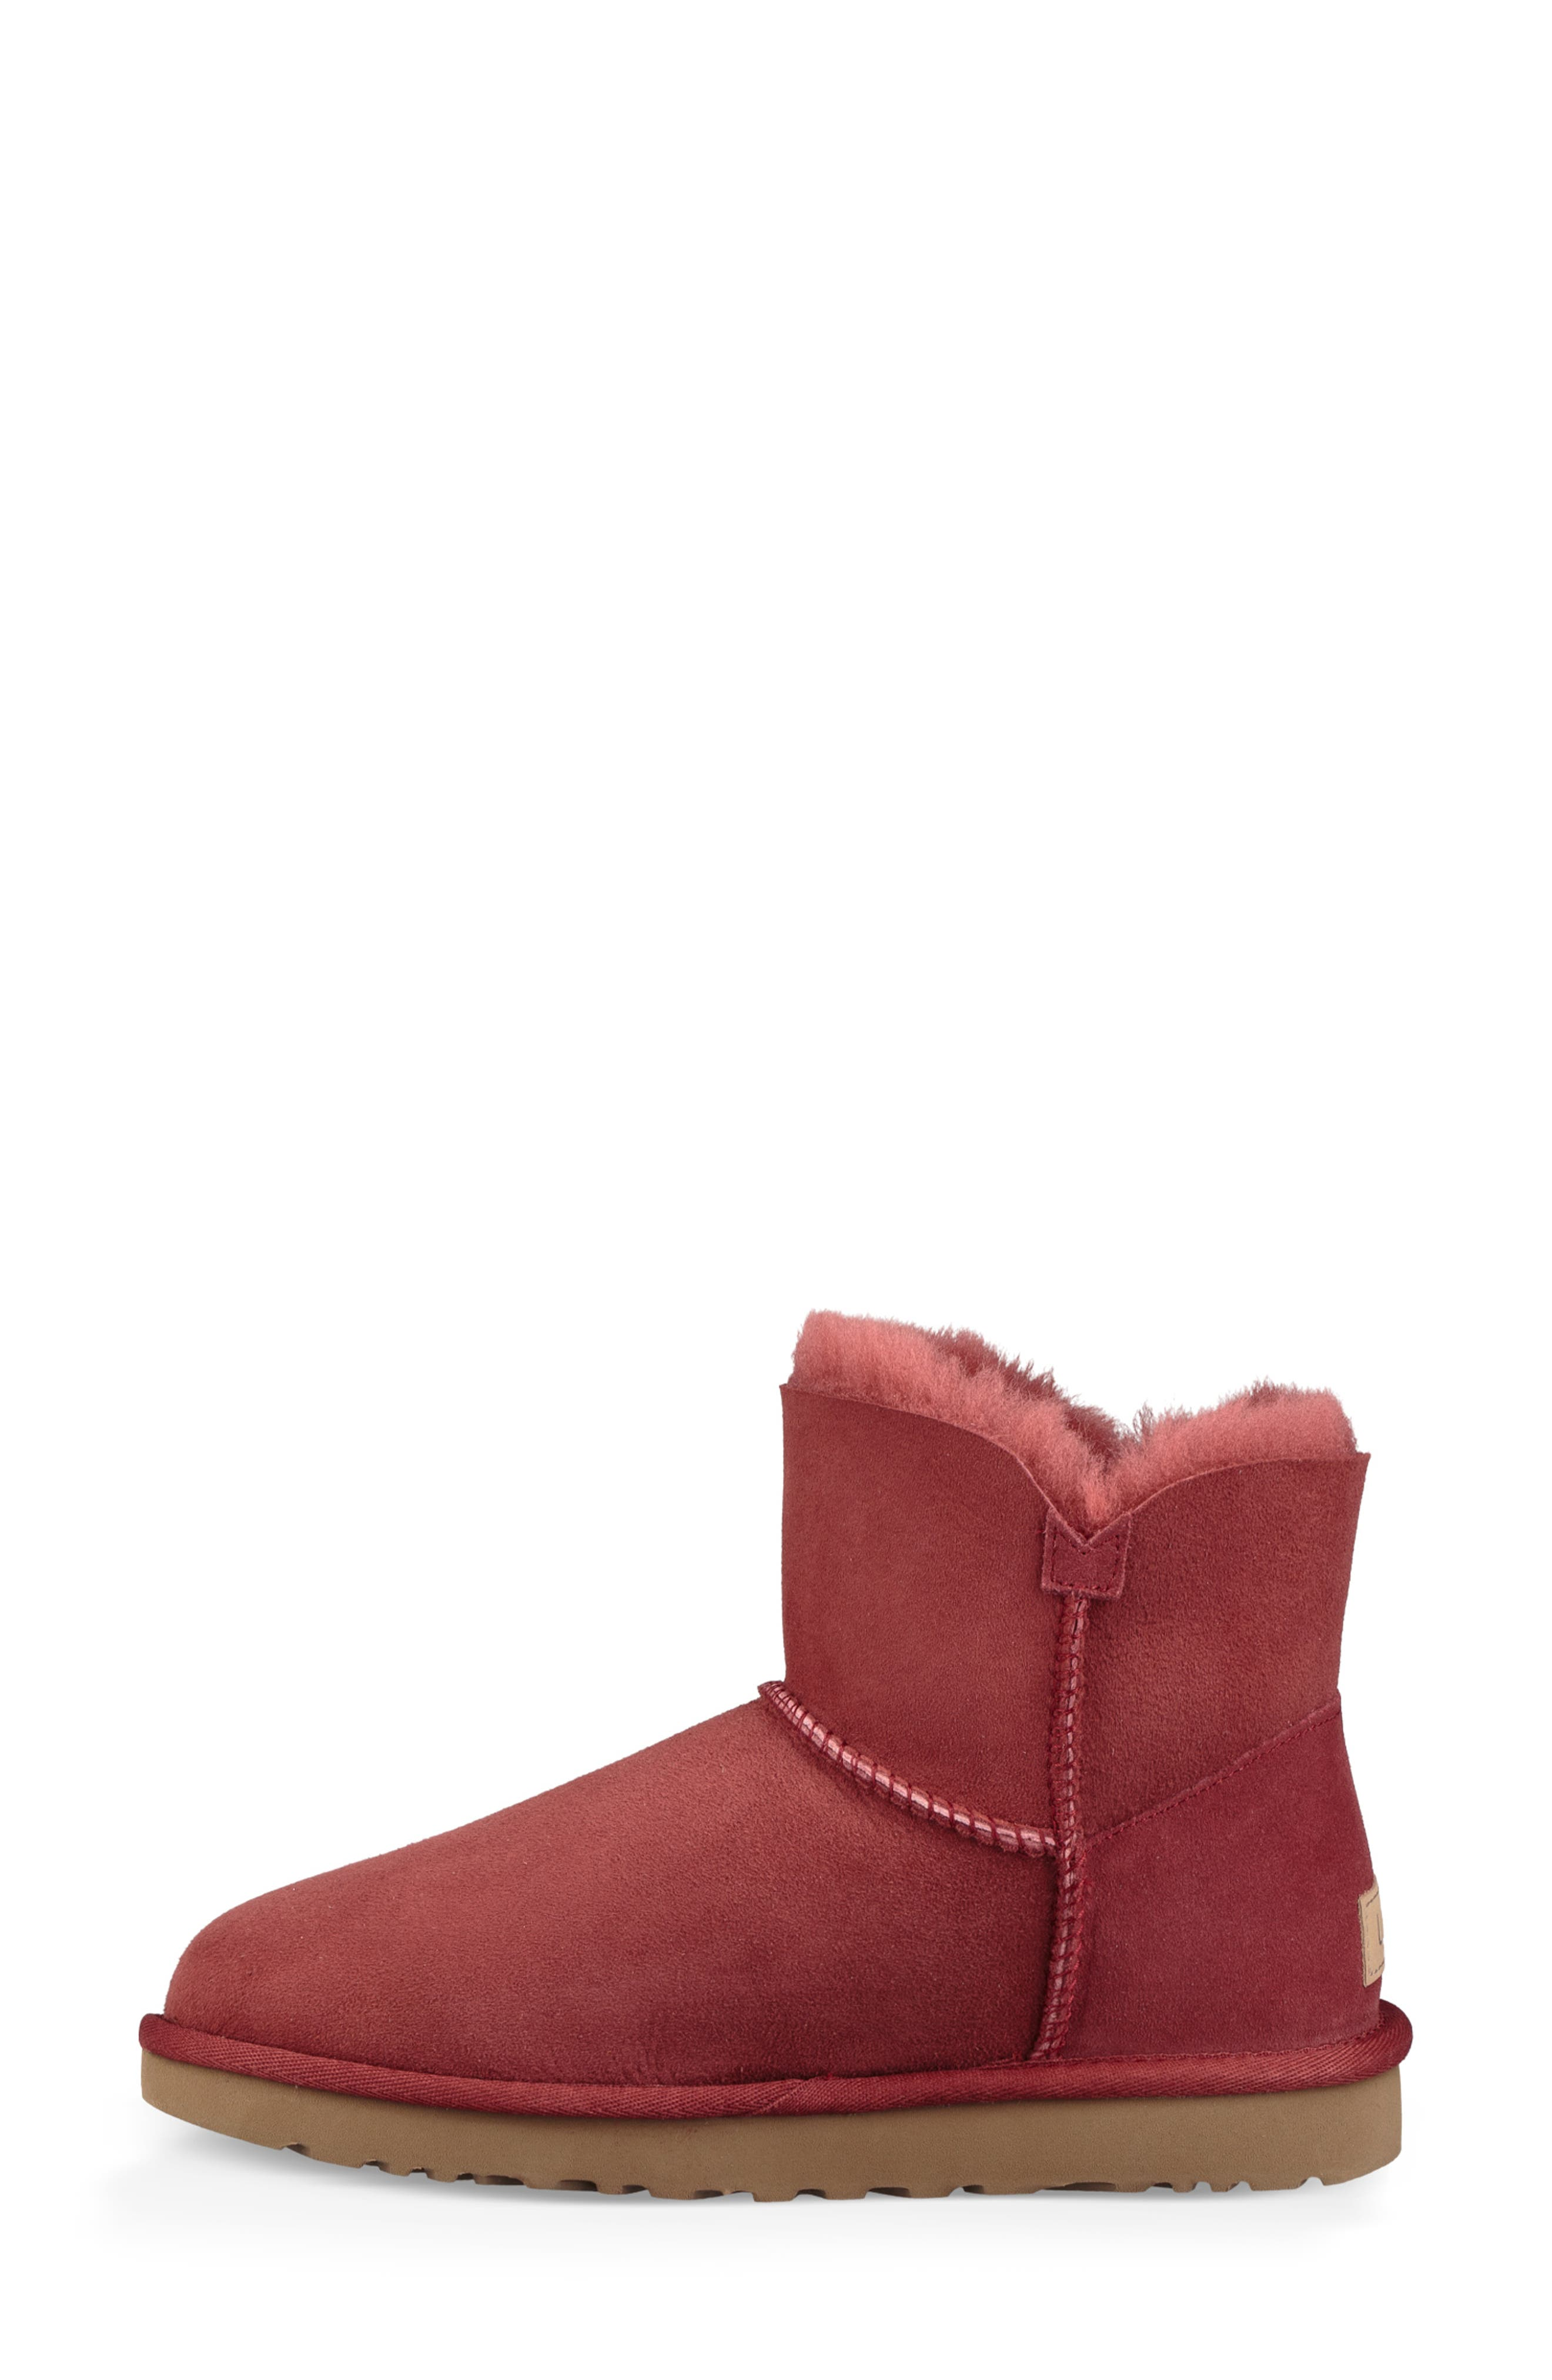 'Mini Bailey Button II' Boot,                             Alternate thumbnail 6, color,                             REDWOOD SUEDE